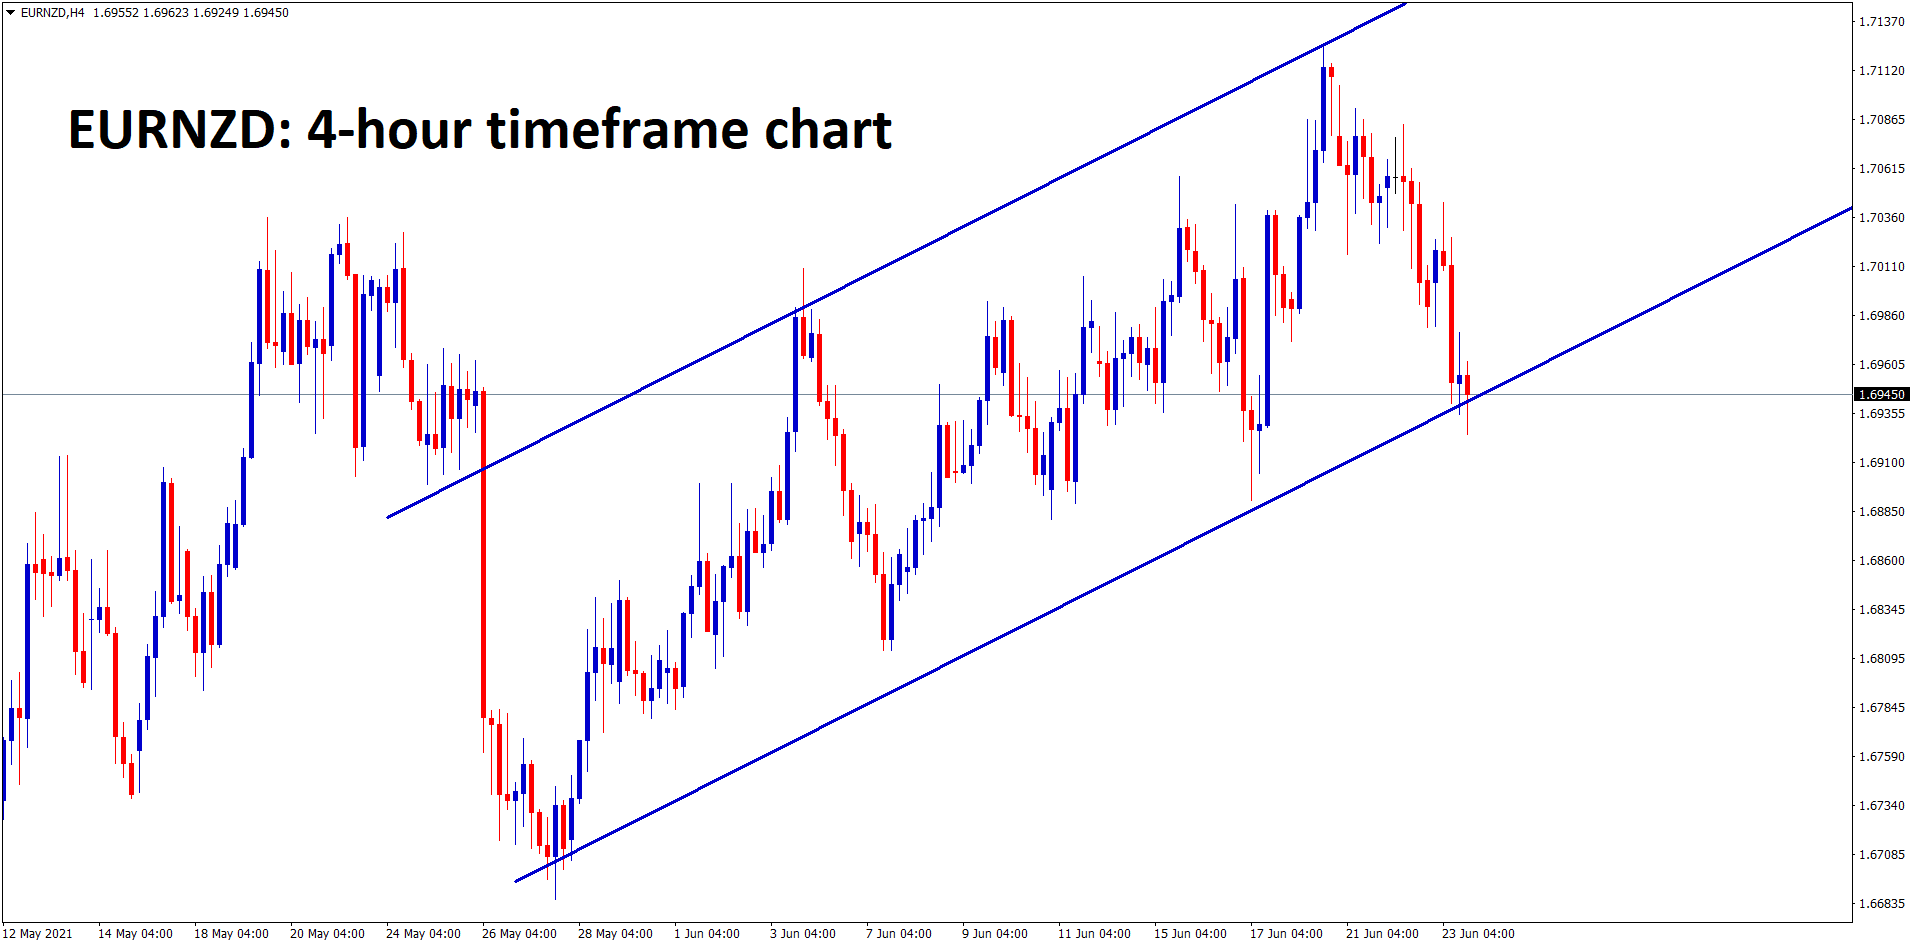 EURNZD is moving in an Ascending channel line.